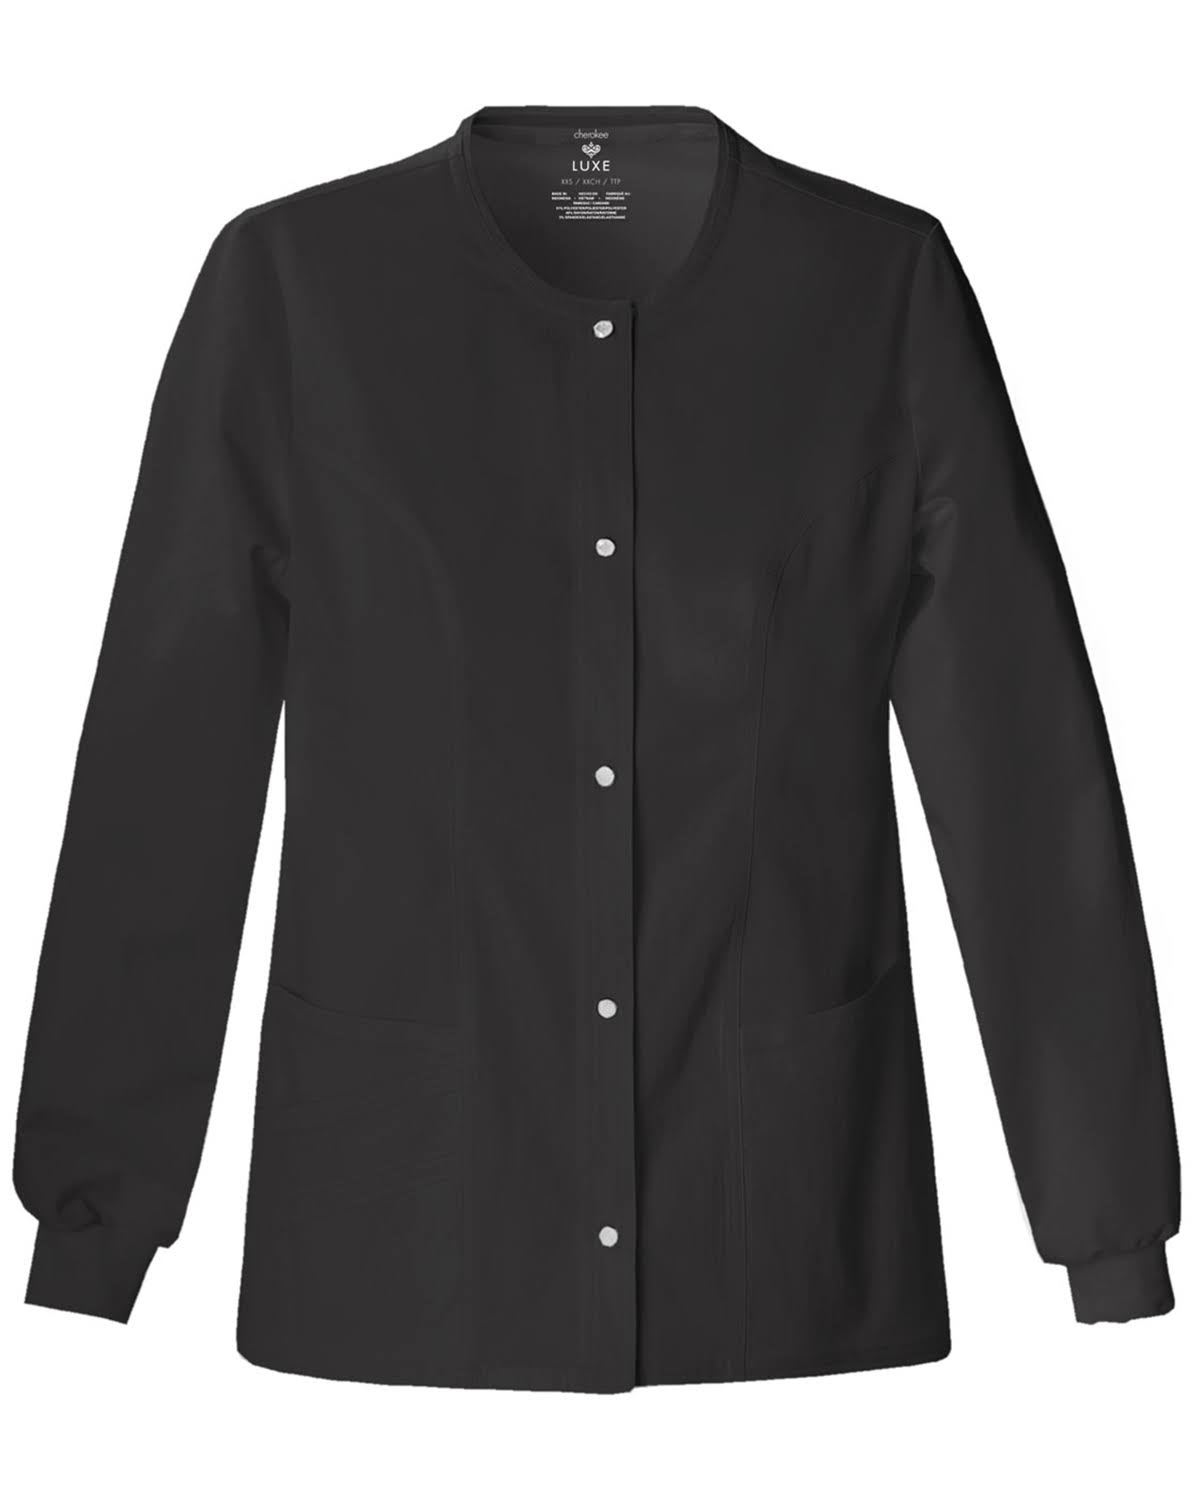 Cherokee Women's Luxe Snap Front Warm-Up Jacket - Black, Medium